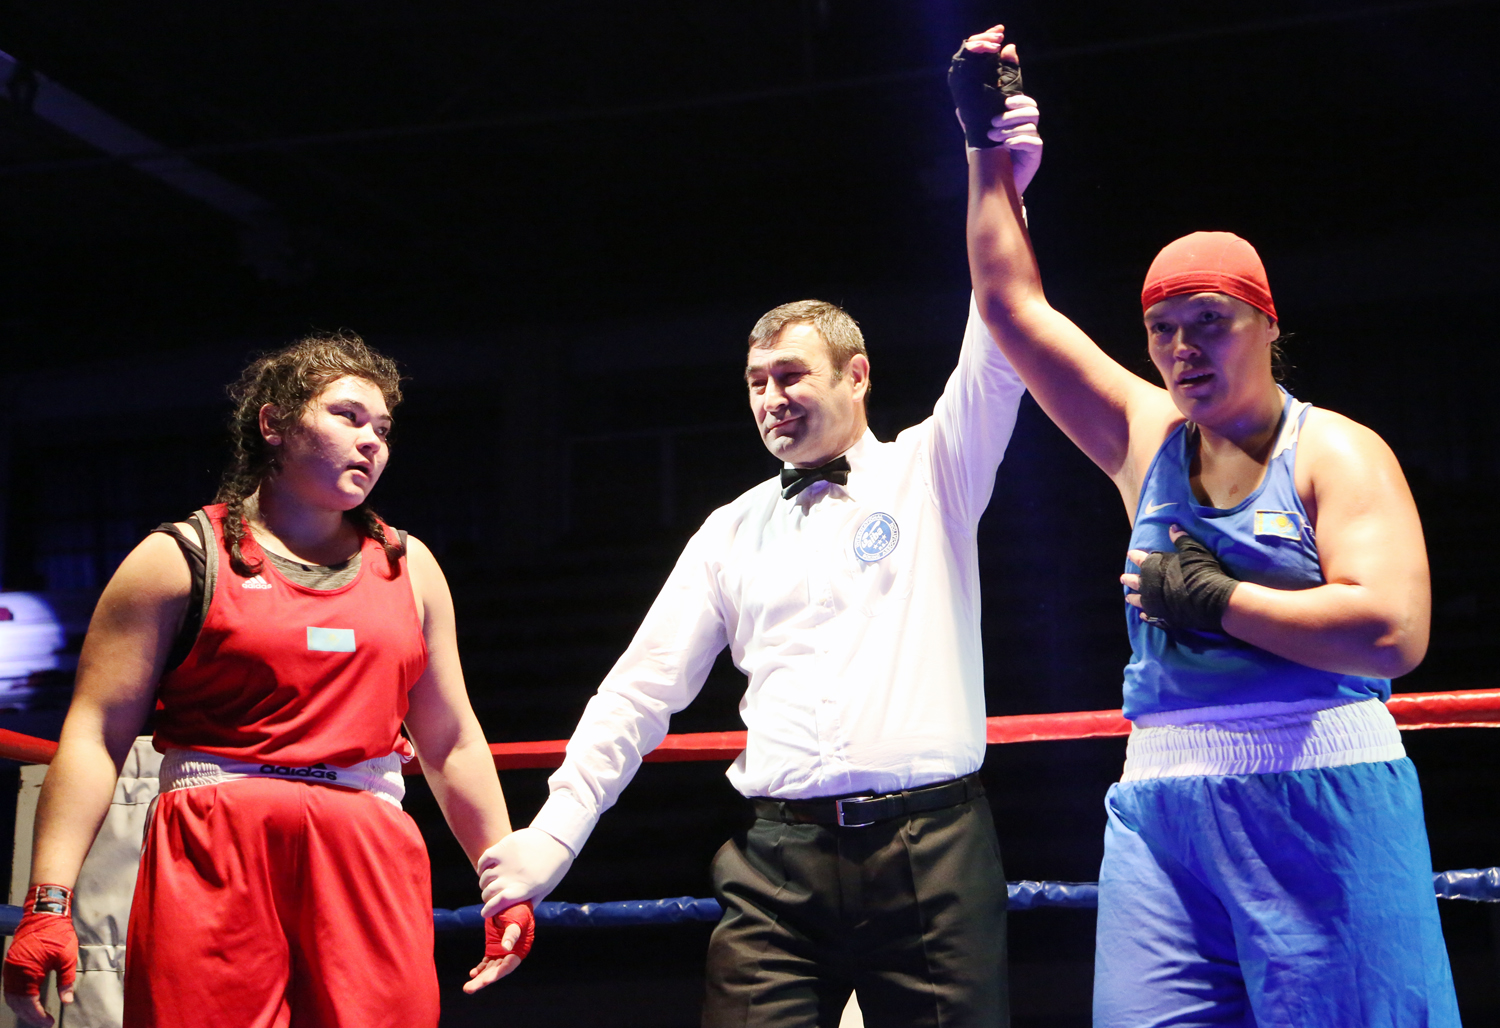 World Champions and Asian Games finalist from Kazakhstan won their fights at the Nations Cup